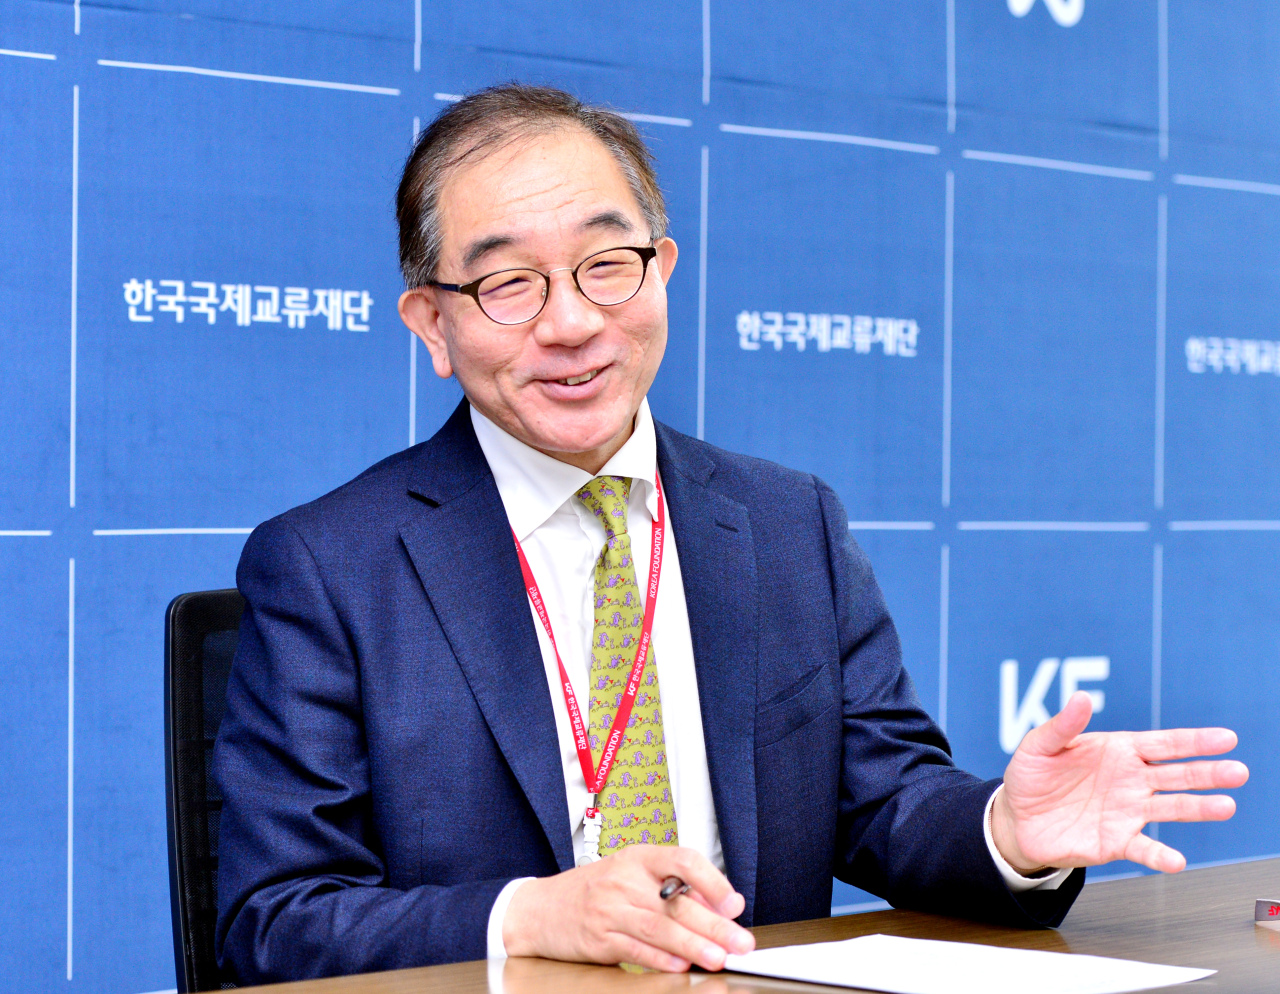 KF President Lee Geun speaks during an interview with The Korea Herald at his office in Euljiro, central Seoul on Dec. 2. (Park Hyun-koo / The Korea Herald)